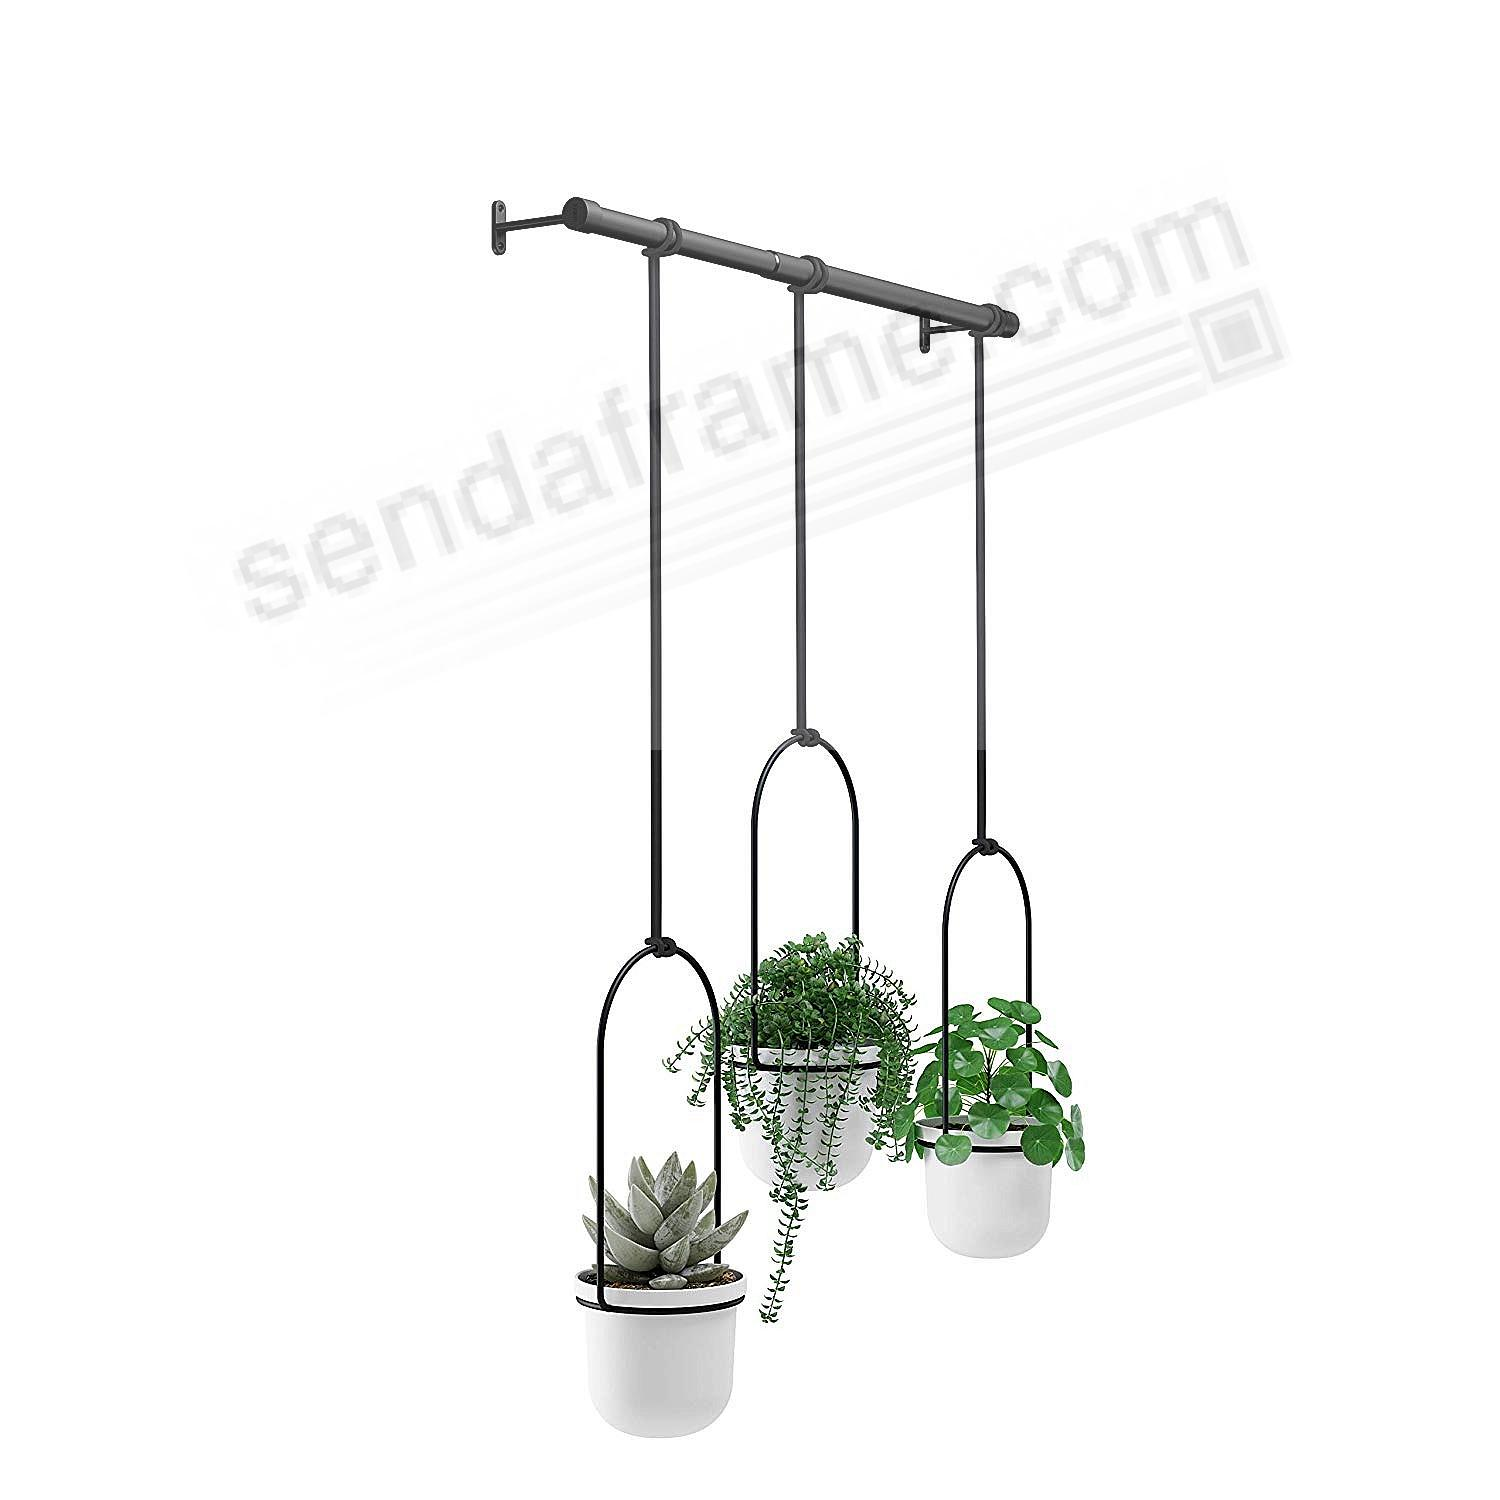 TRIFLORA HANGING PLANTER White/Black by Umbra